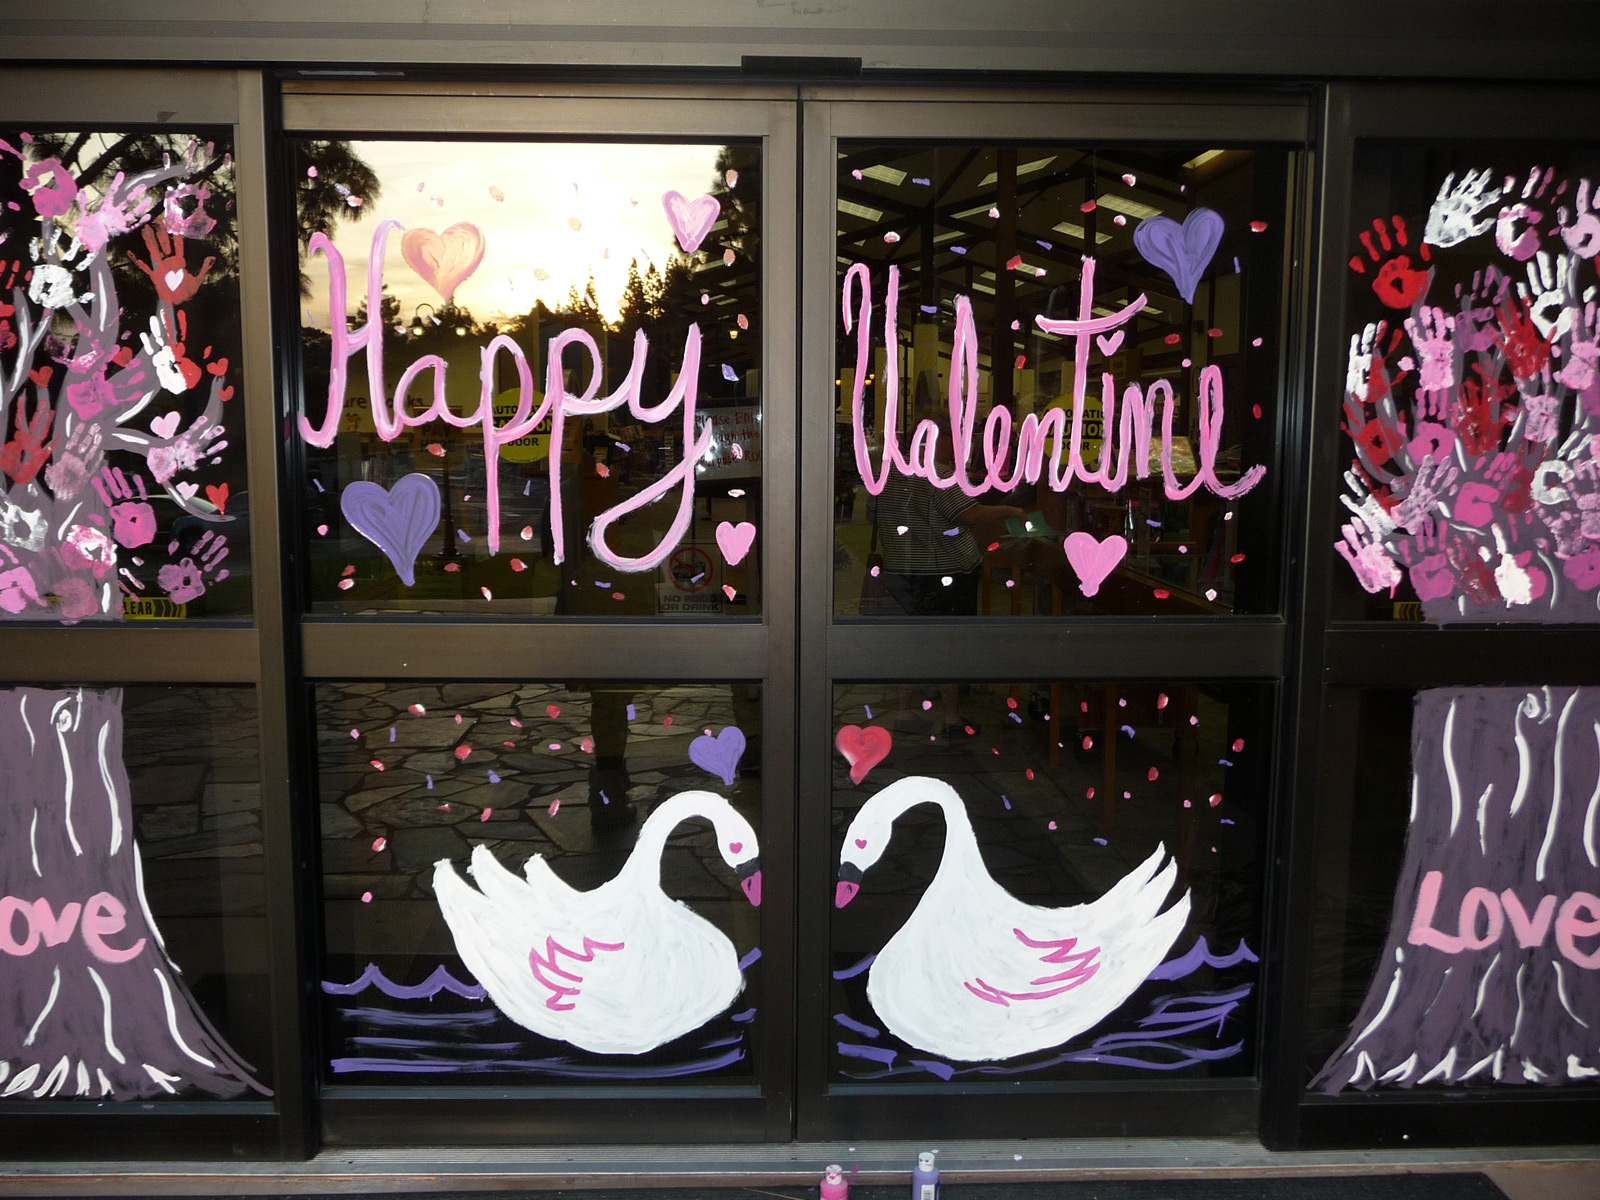 A window display with painted trees with palms instead of leaves and white swans symbolizing love on Valentine's day.